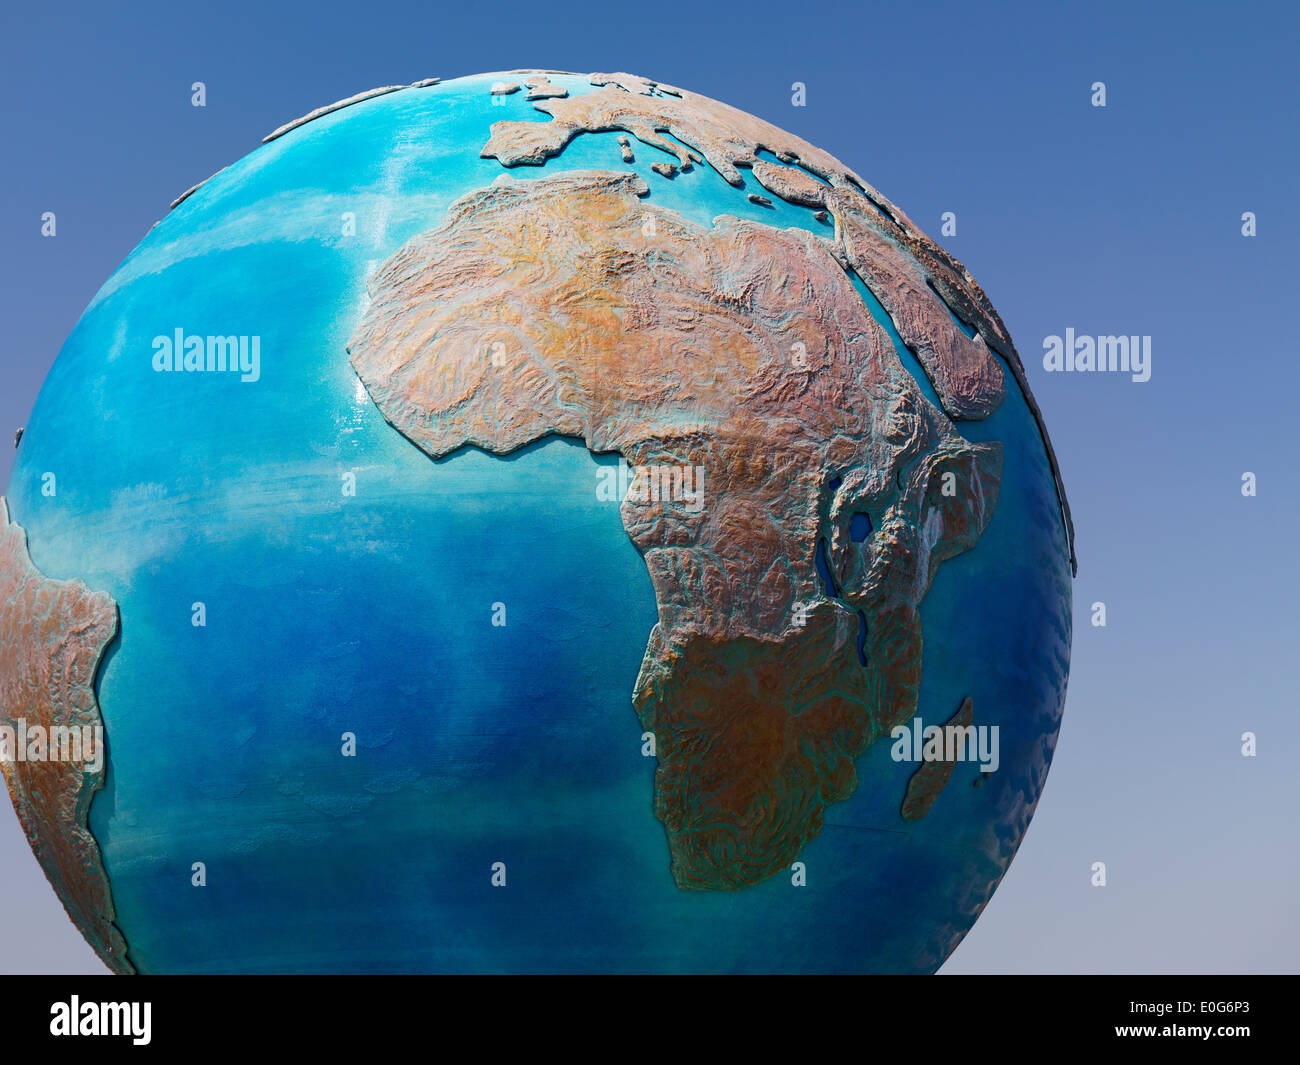 Earth globe sculpture over blue sky in Tokyo Disneysea - Stock Image